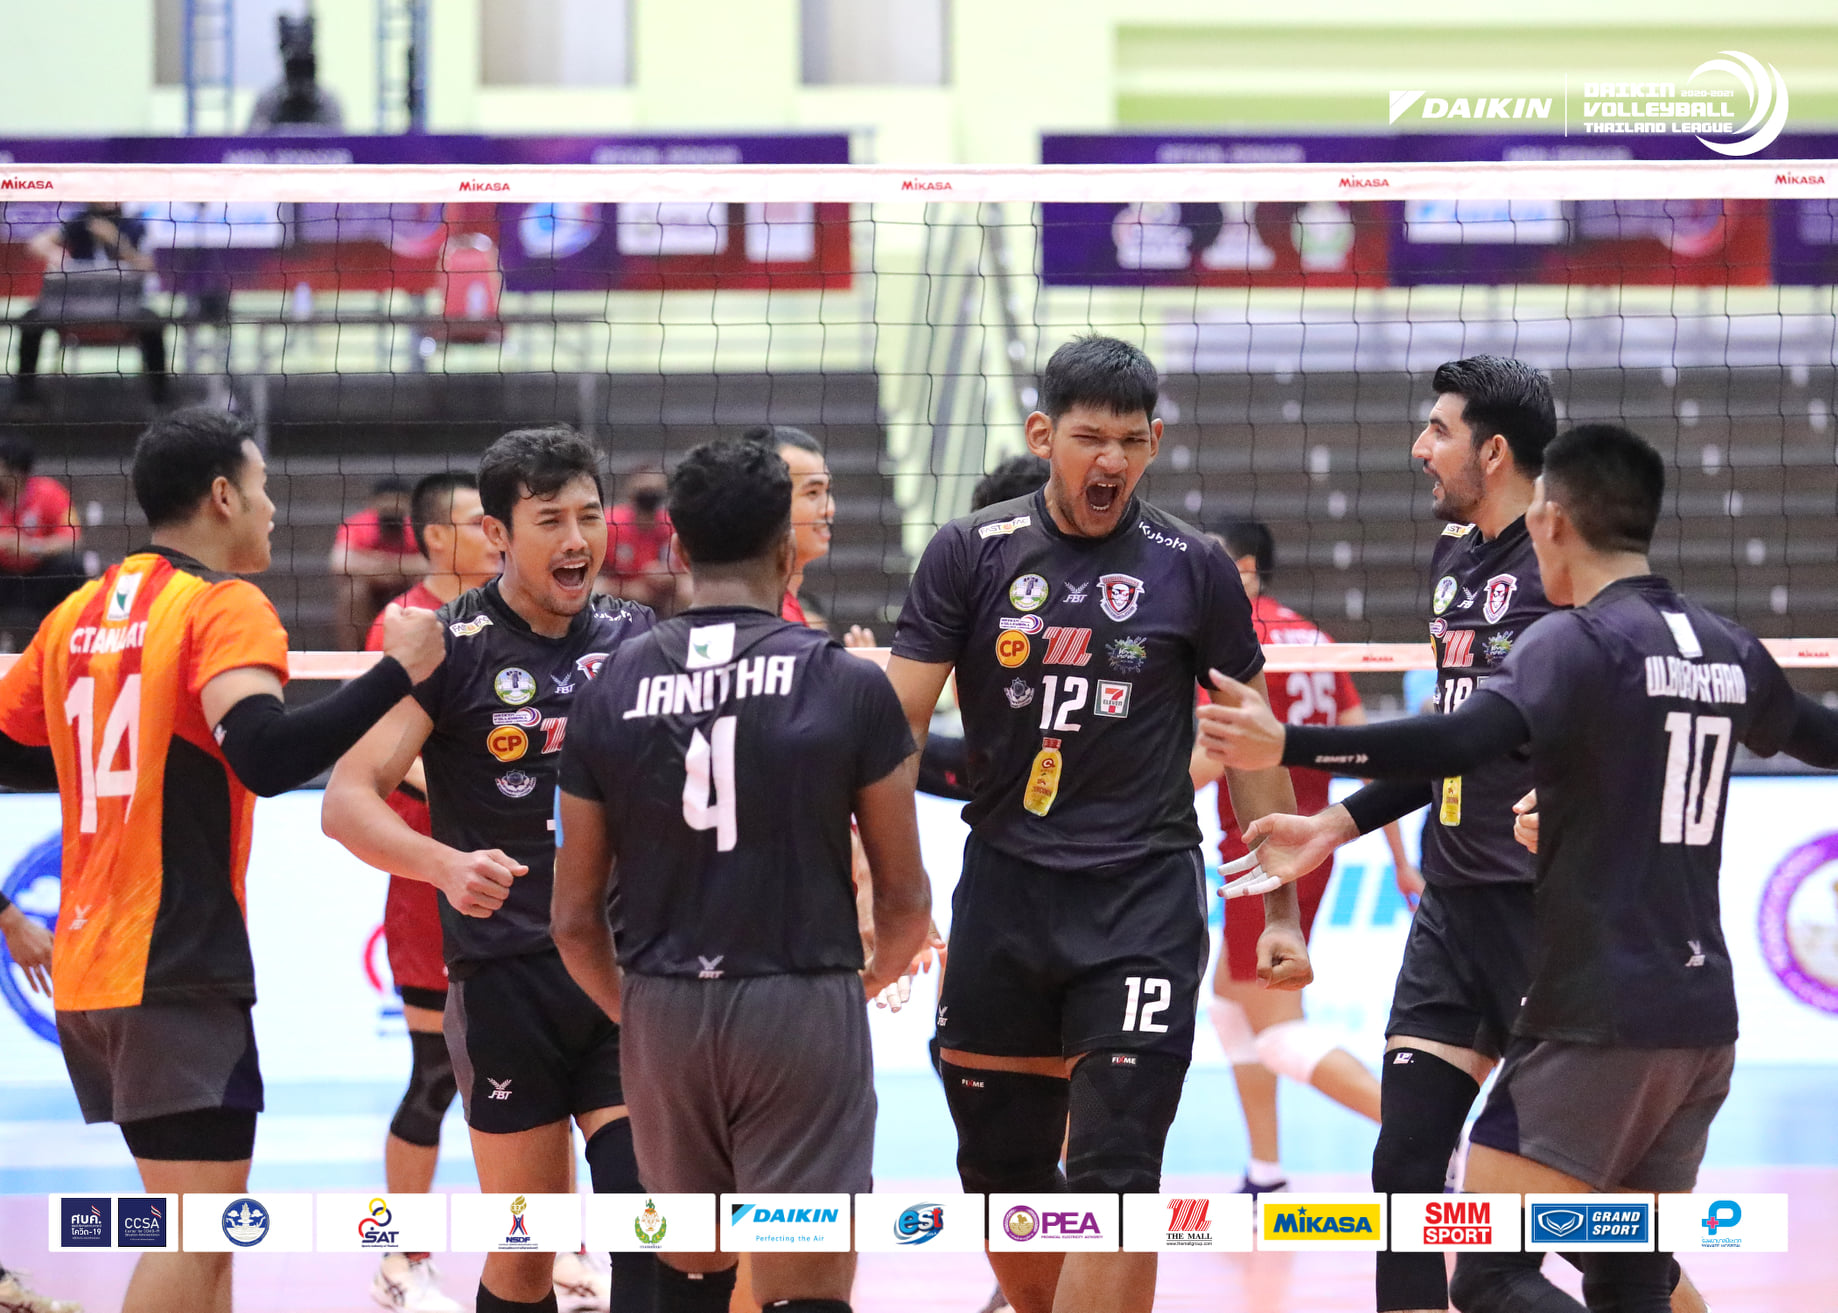 NAKHON RATCHASIMA UNOFFICIALLY CROWNED MEN'S CHAMPIONS IN VOLLEYBALL THAILAND LEAGUE 2020-2021